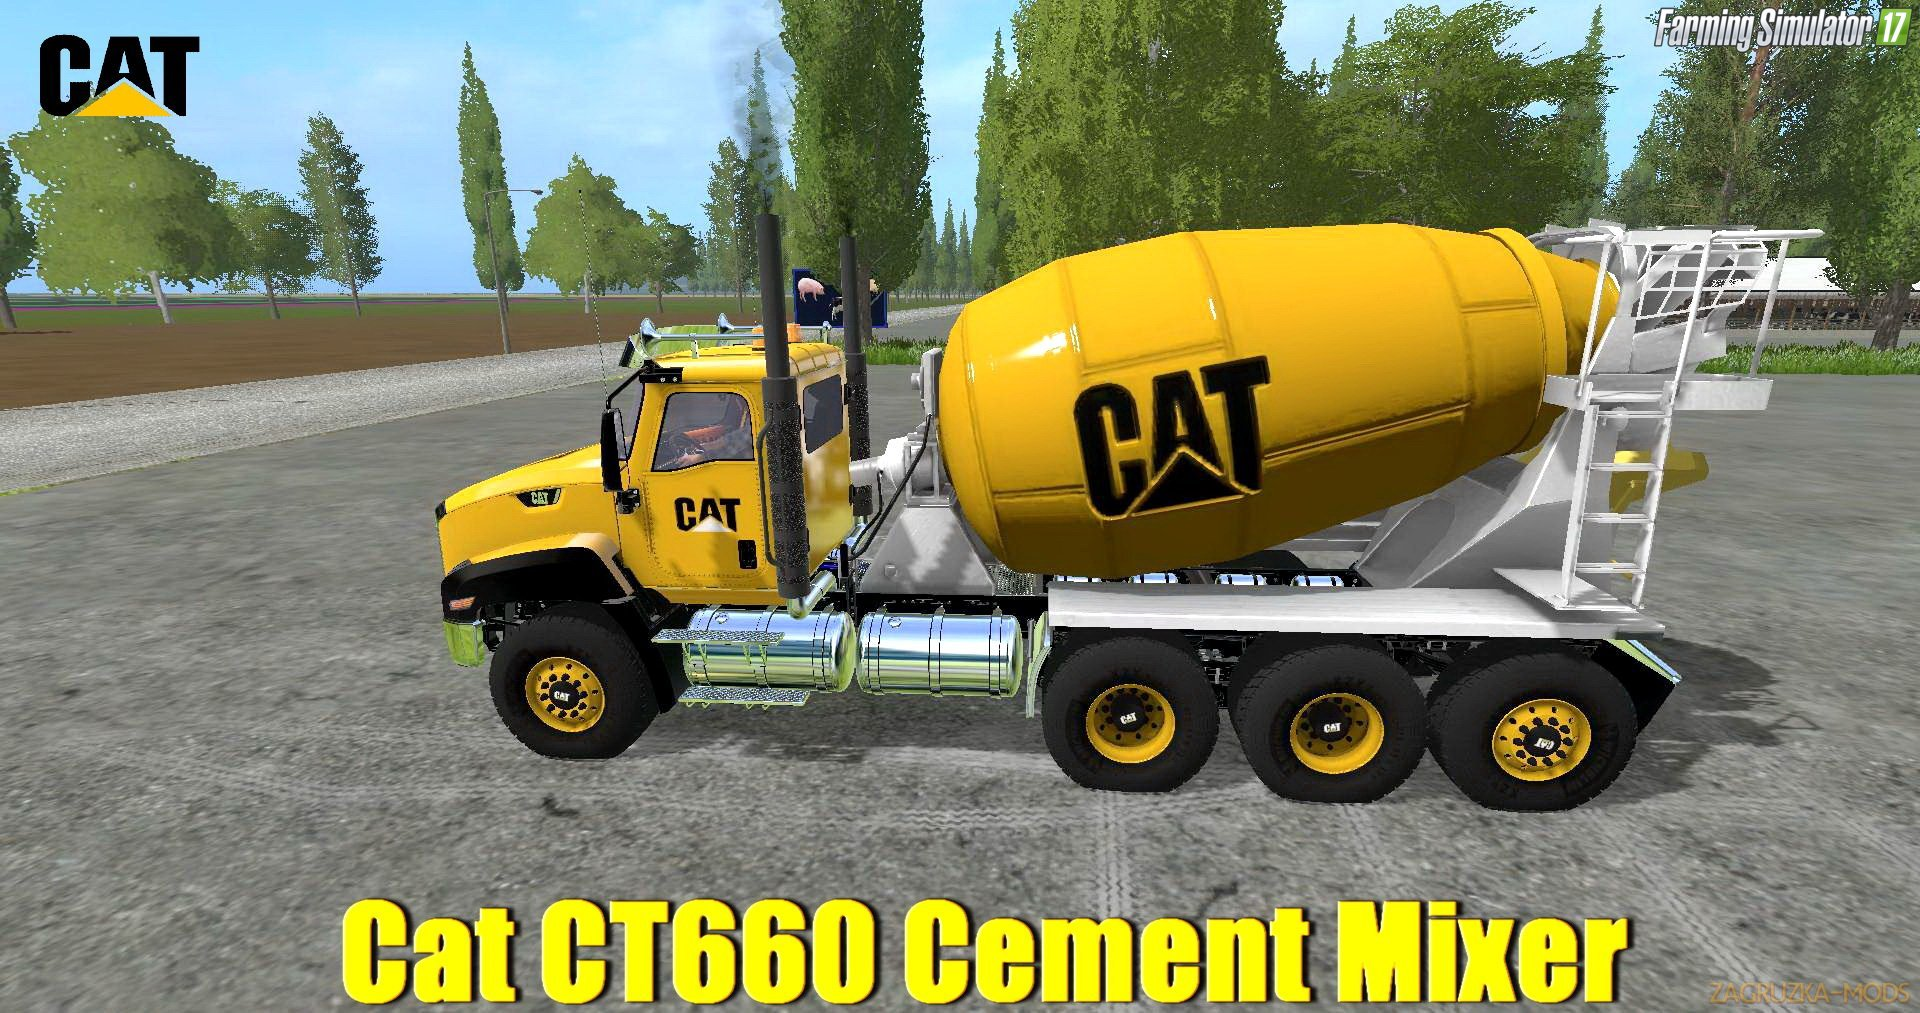 Cat CT660 Cement Mixer v1.0 for FS 17